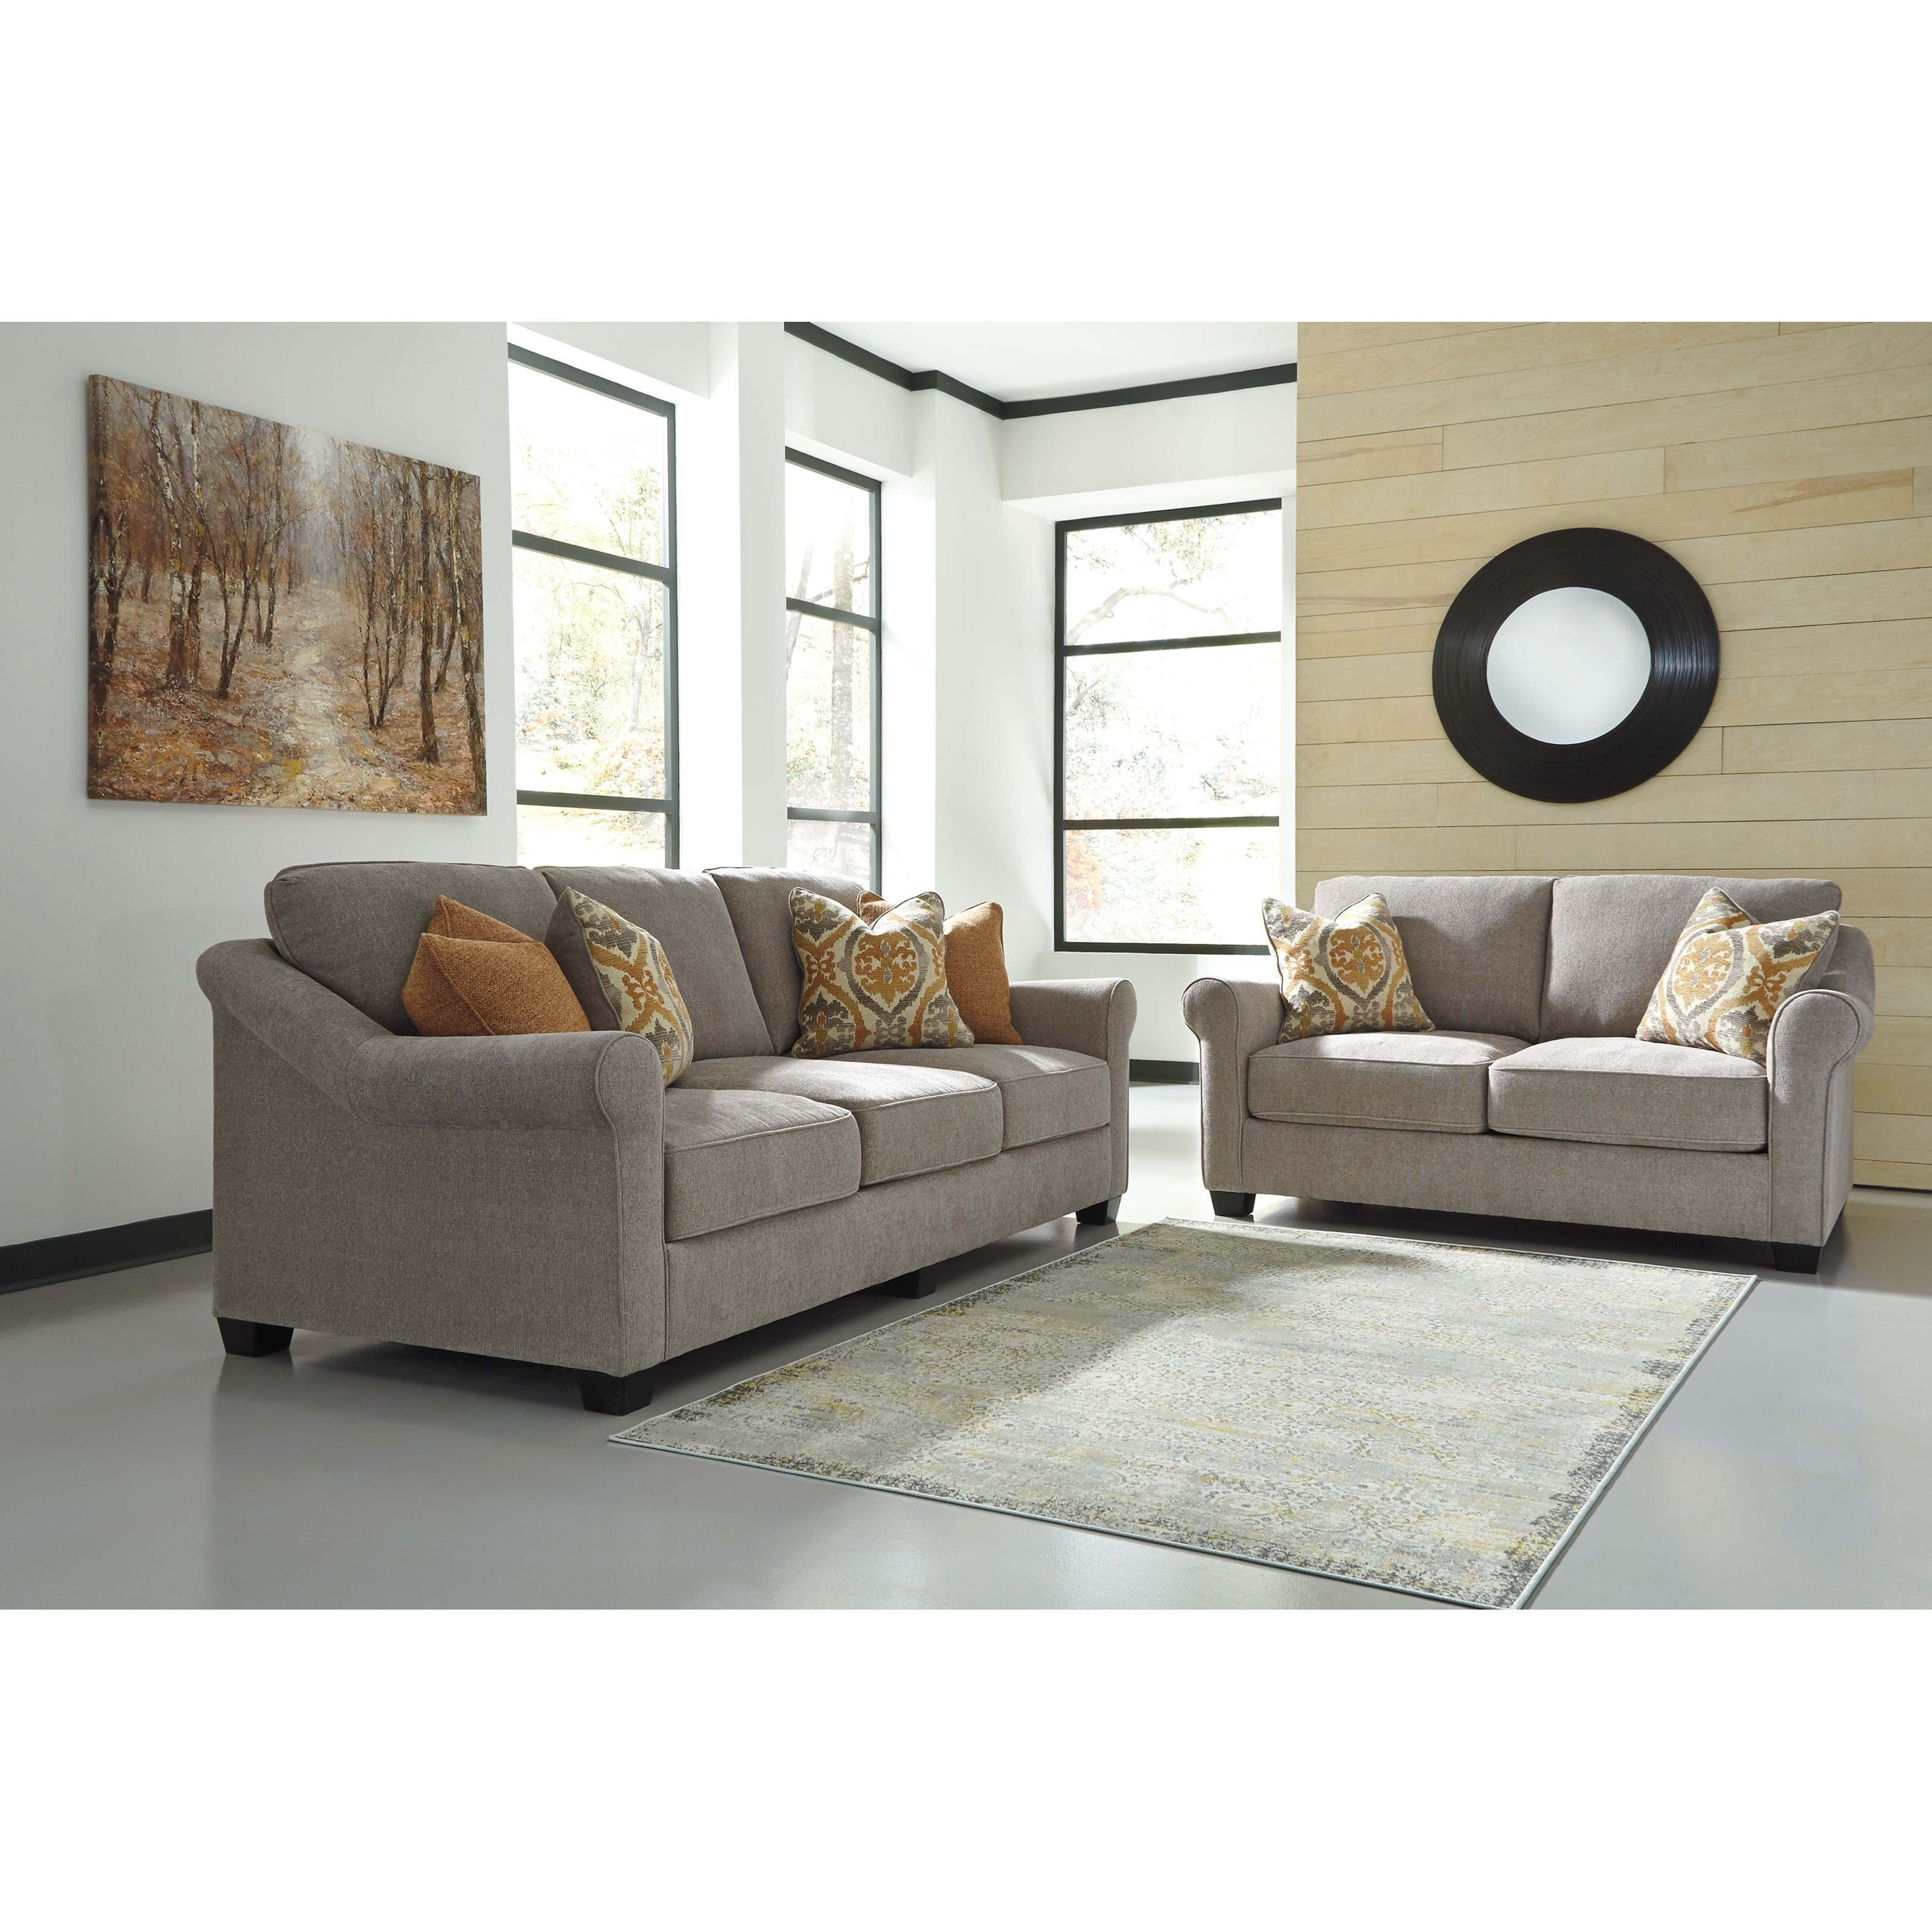 Benchcraft Leola Stationary Living Room Group - Item Number: 53601 Living Room Group 1